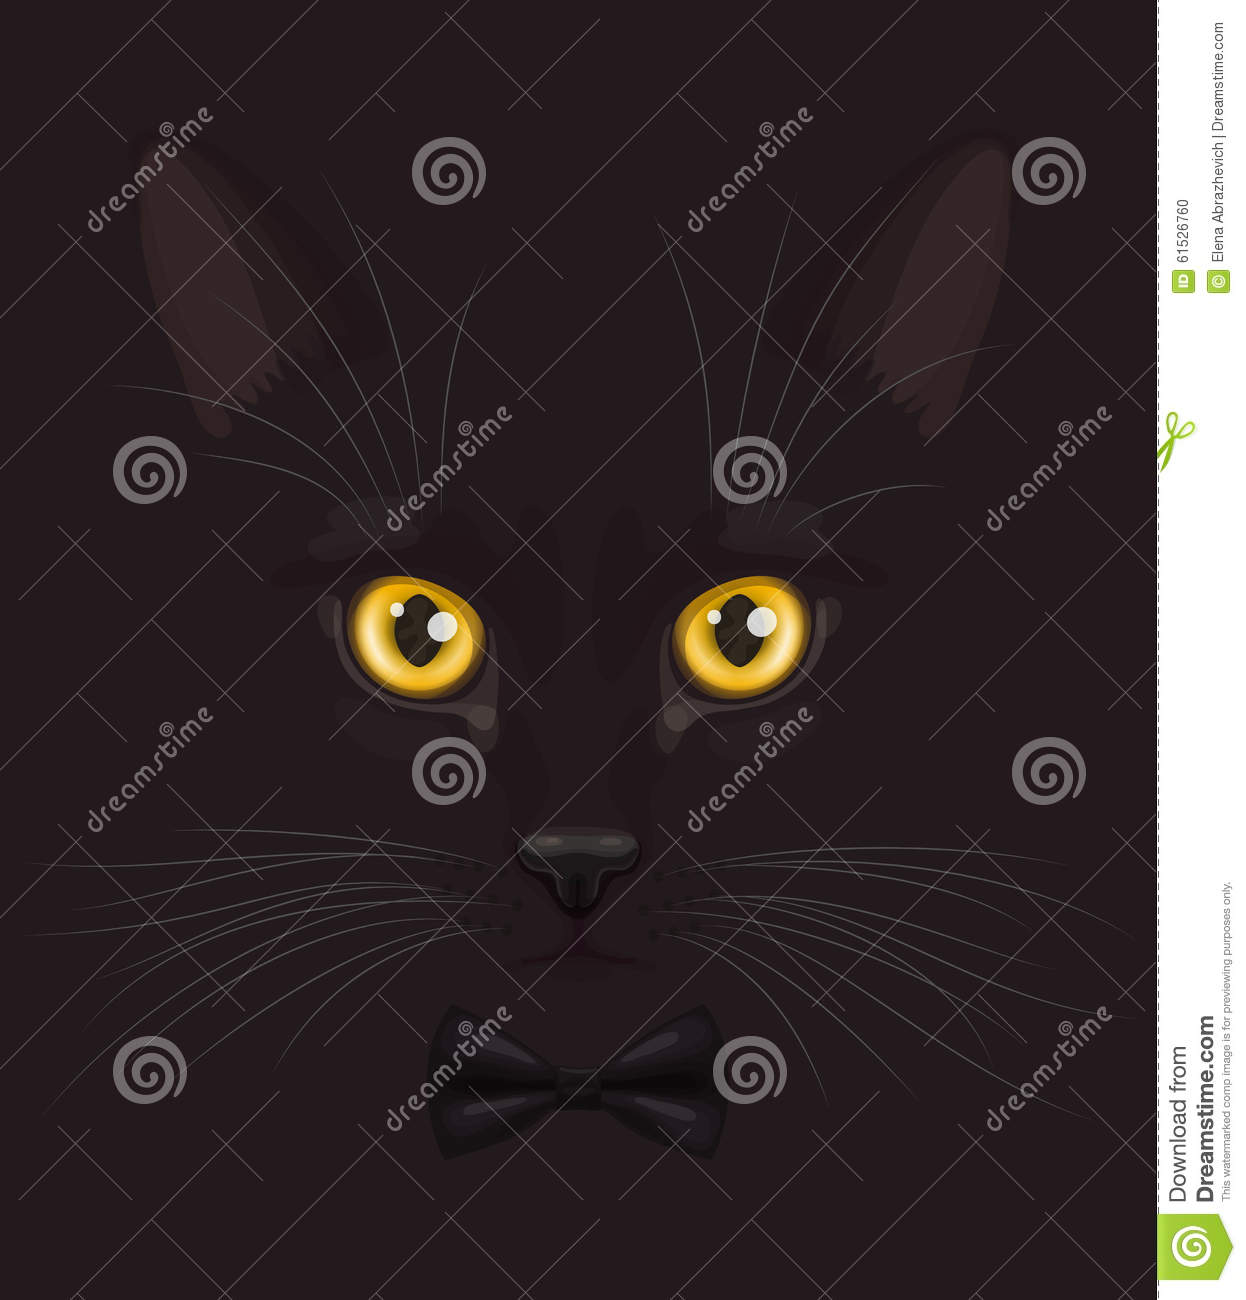 469a191bceaa Black cat with bow-tie stock vector. Illustration of steadfast ...